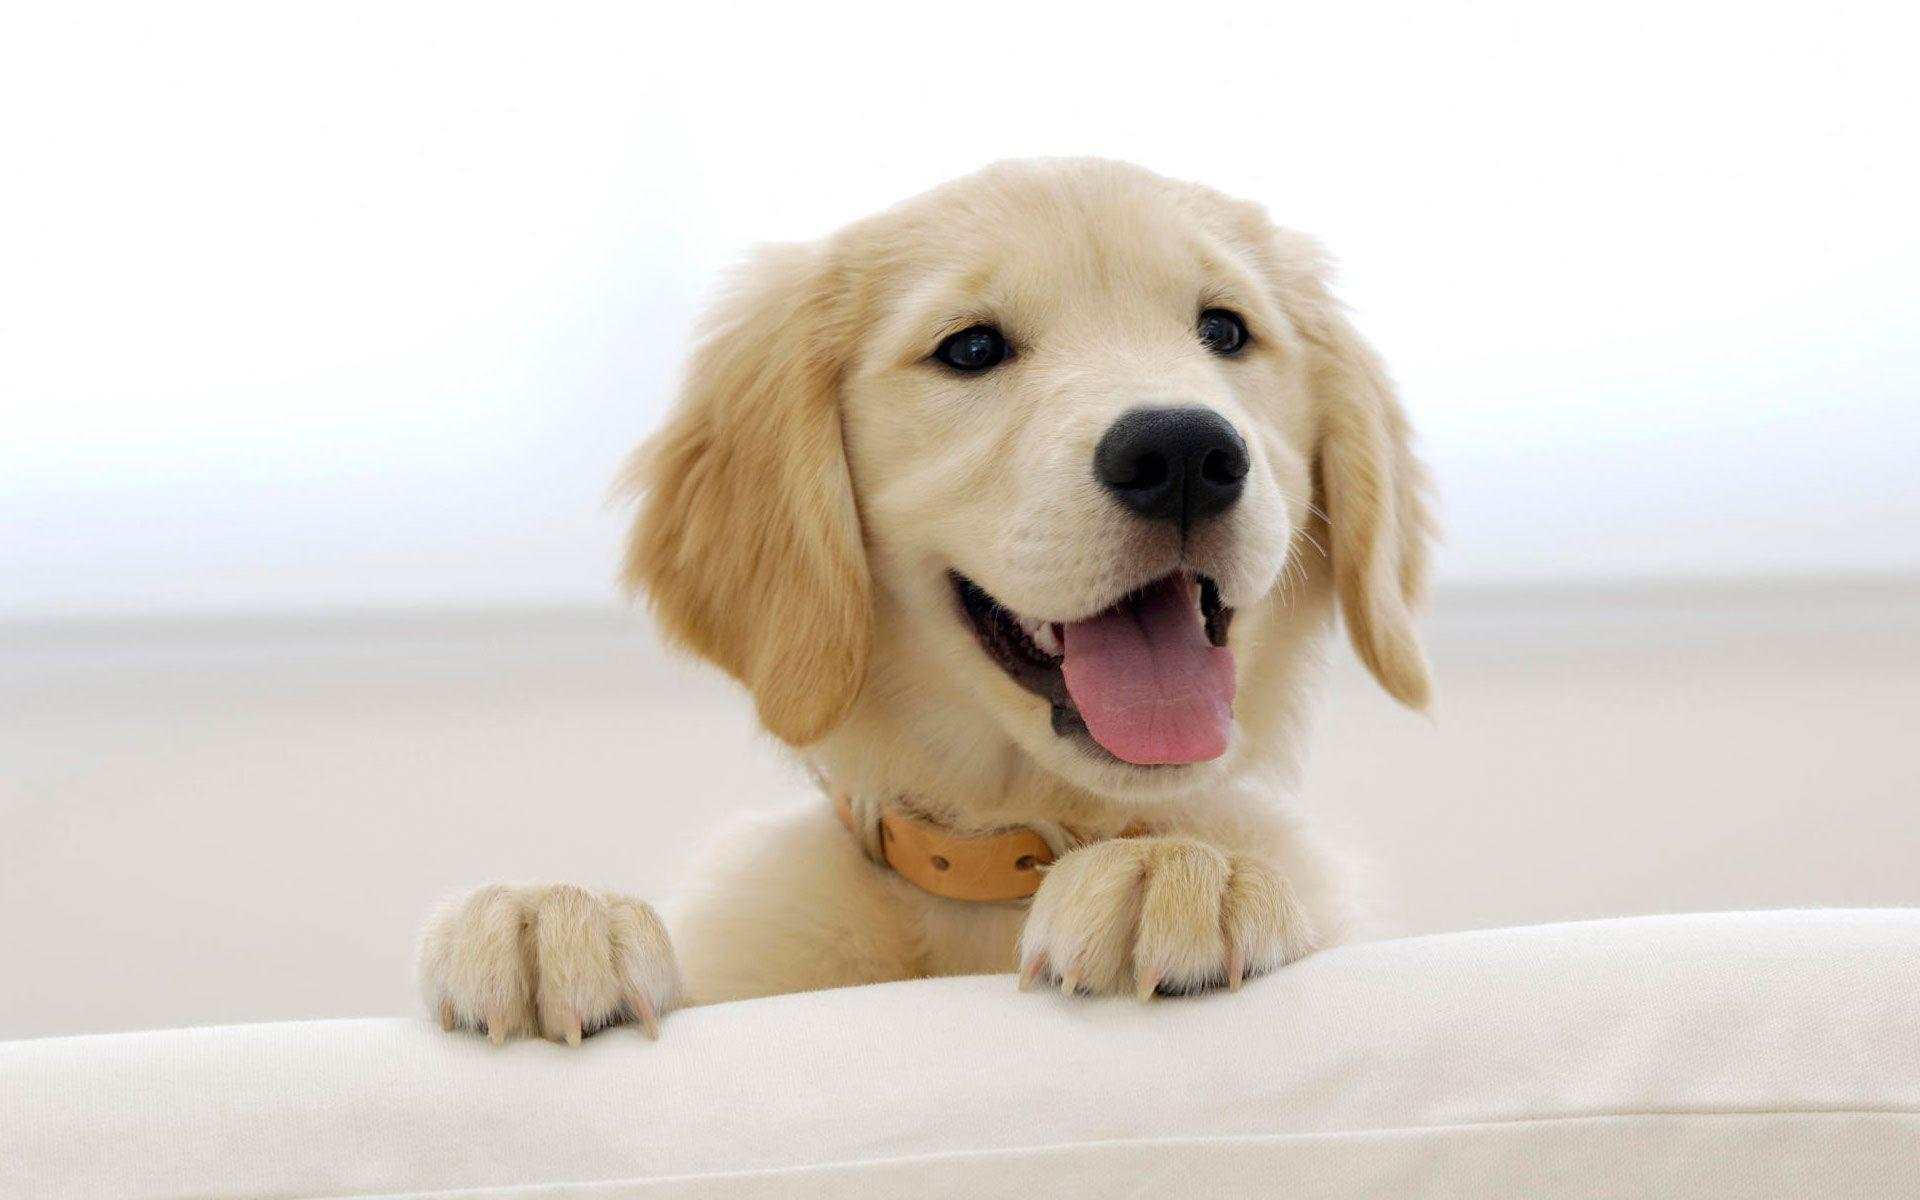 Dog HD Wallpapers Backgrounds Wallpaper